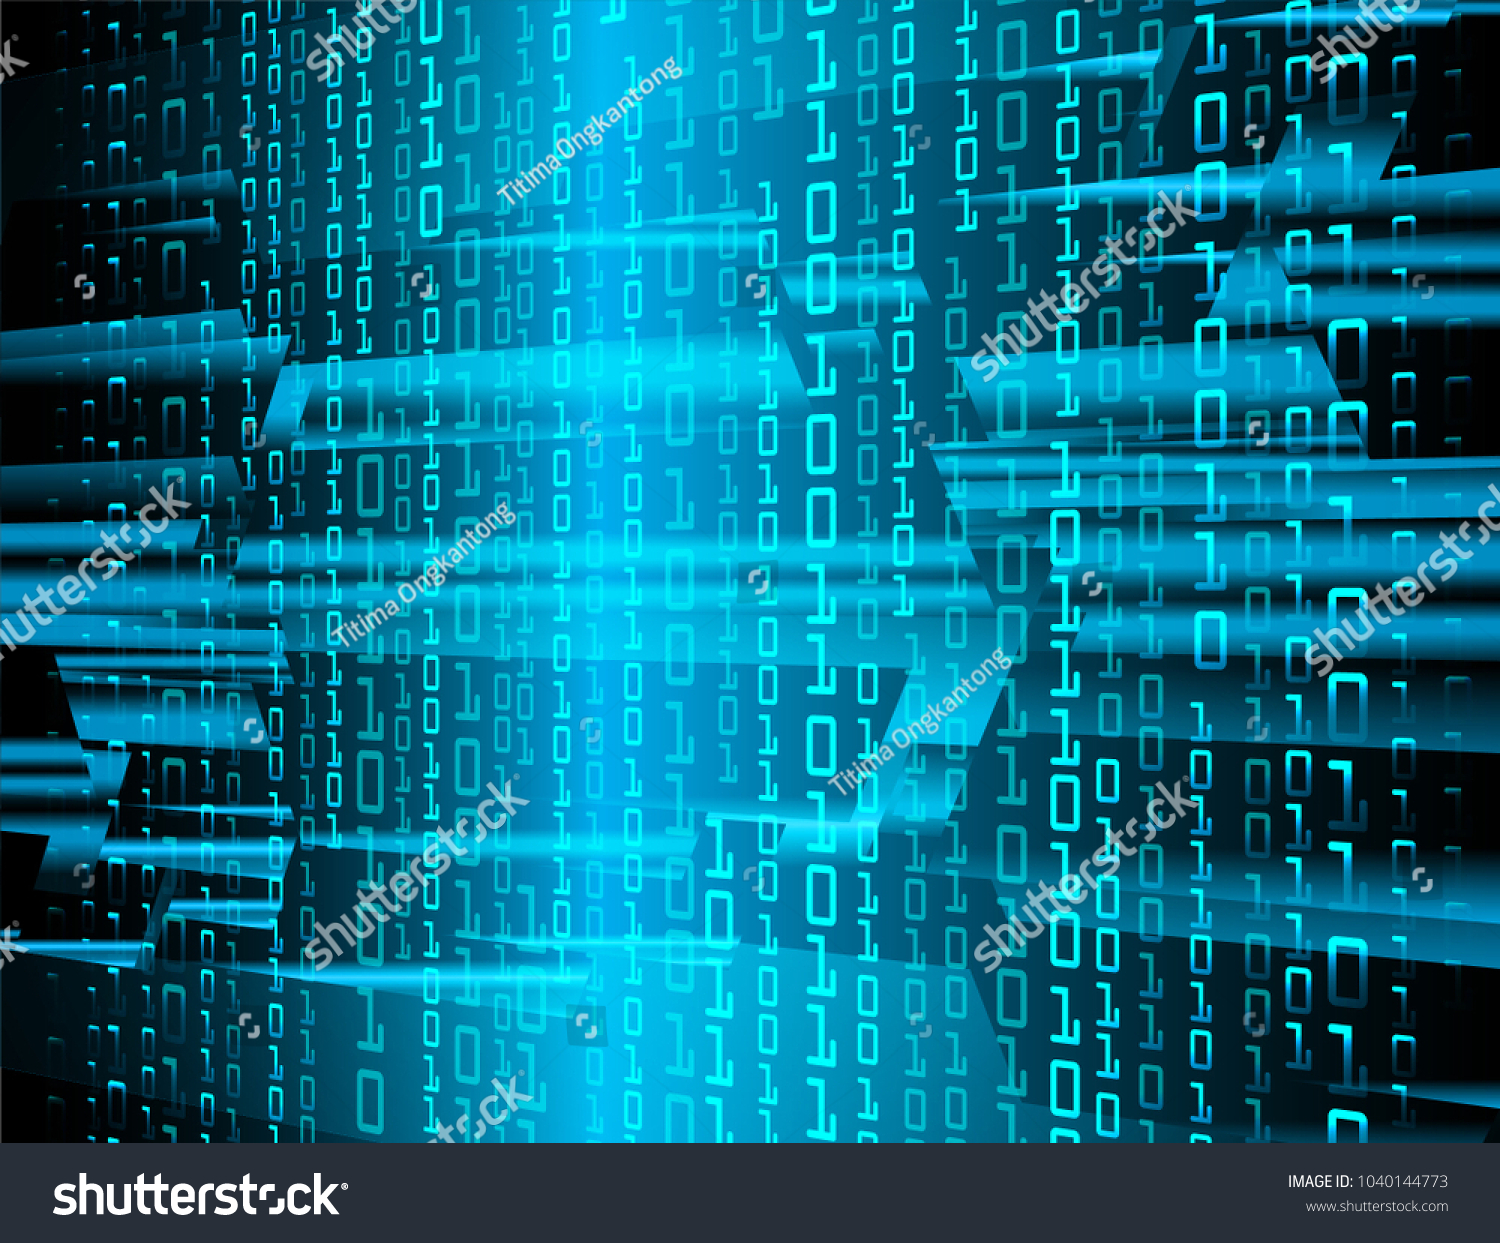 Binary Circuit Board Future Technology Blue Cyber Security Concept Background Vector Abstract Design Id 1040144773